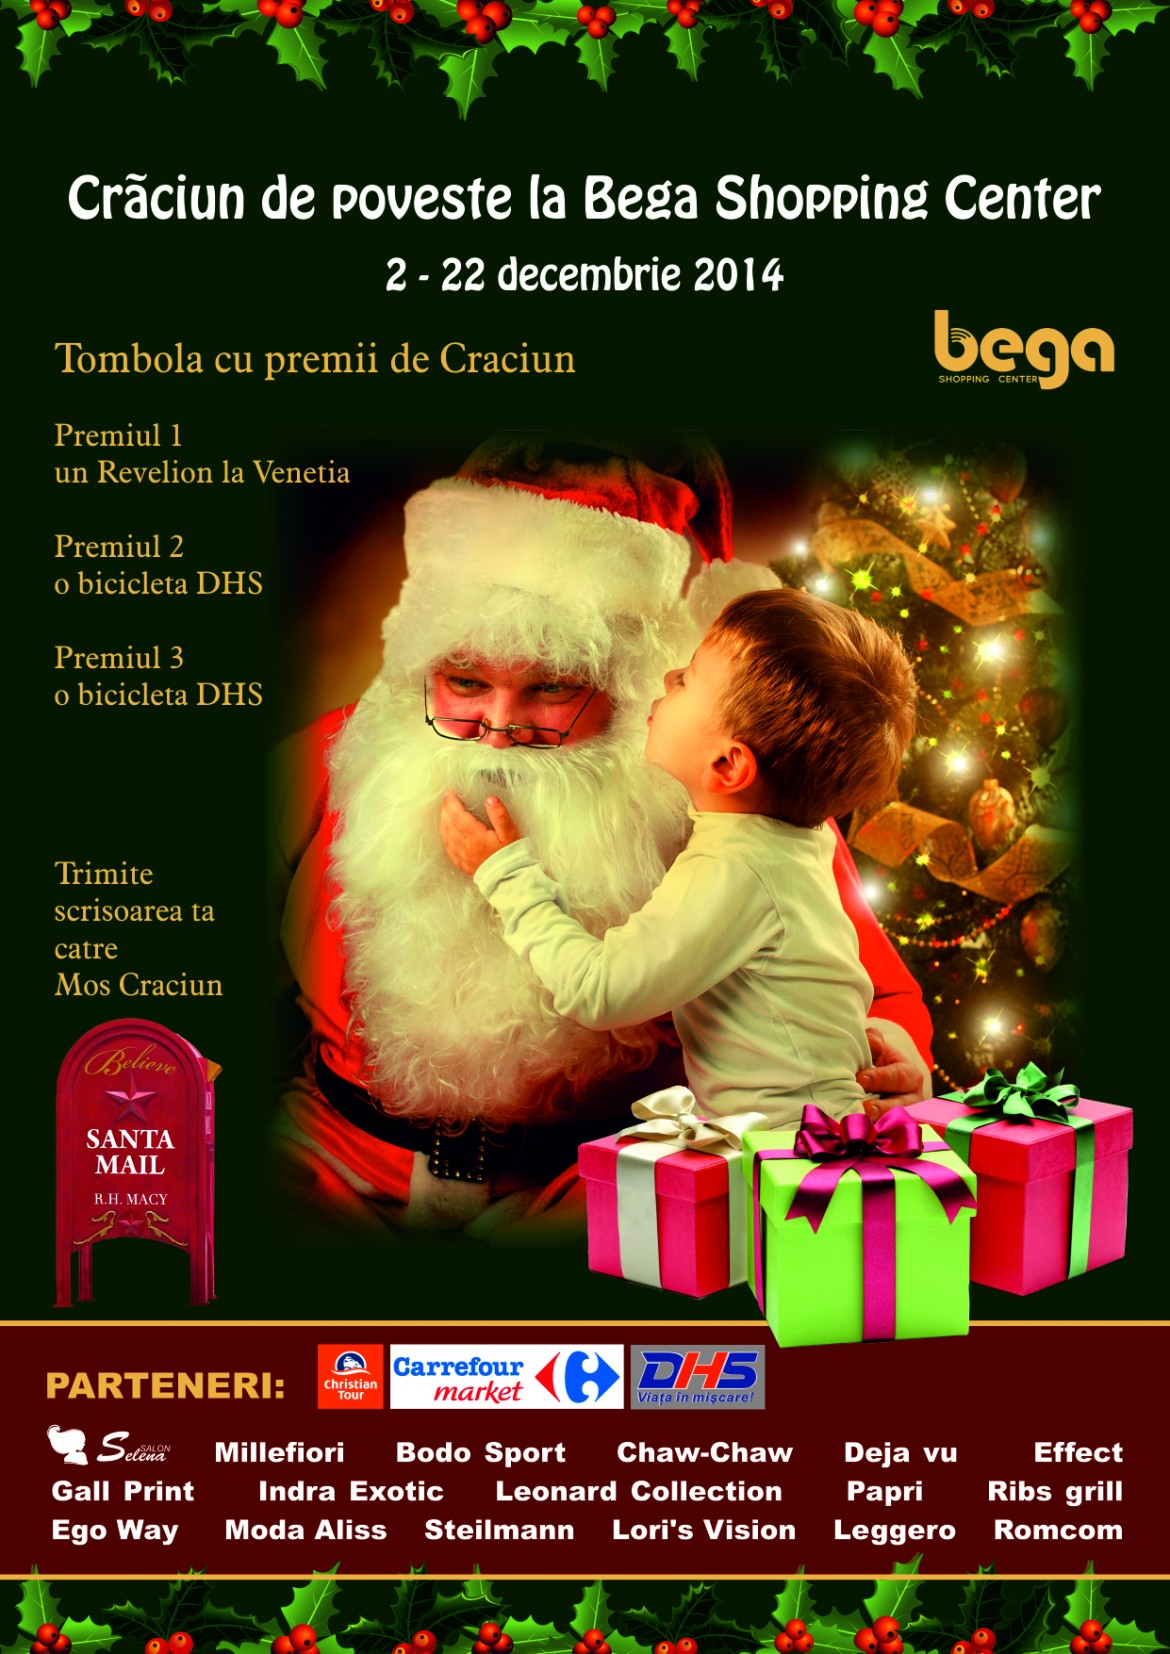 Craciun de poveste la Bega Shopping Center